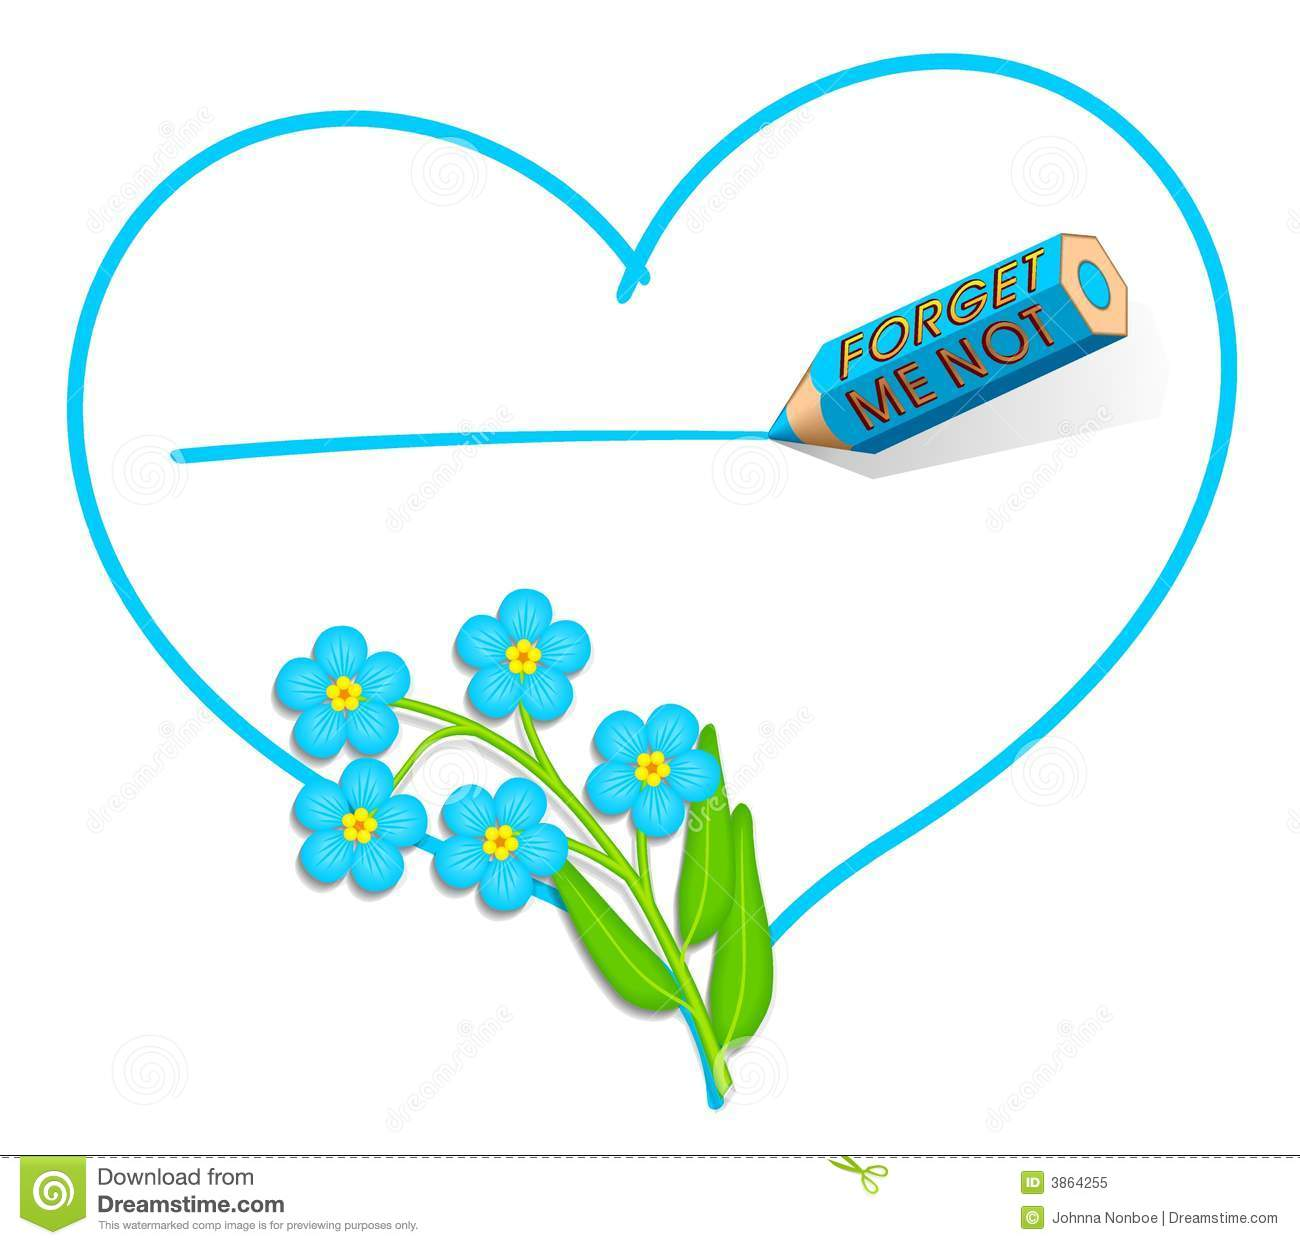 11 flower pencil sketch easy sketches anime for beginners flower pencil sketch forget me not love note royalty free stock photo image ccuart Image collections